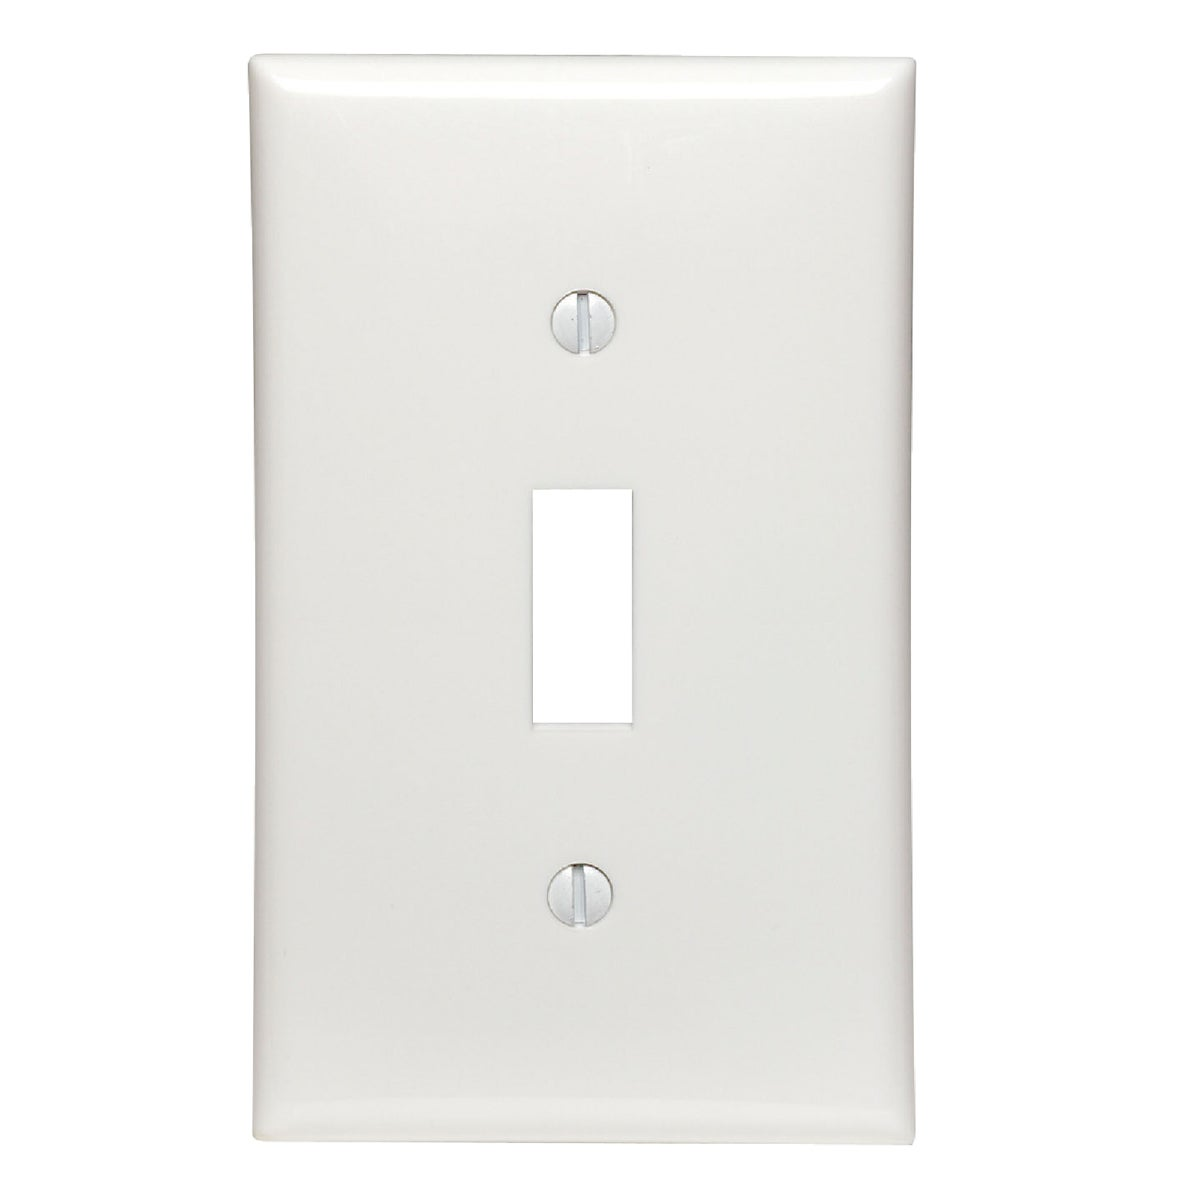 WHT 1-TOGGLE WALL PLATE - 80701W by Leviton Mfg Co